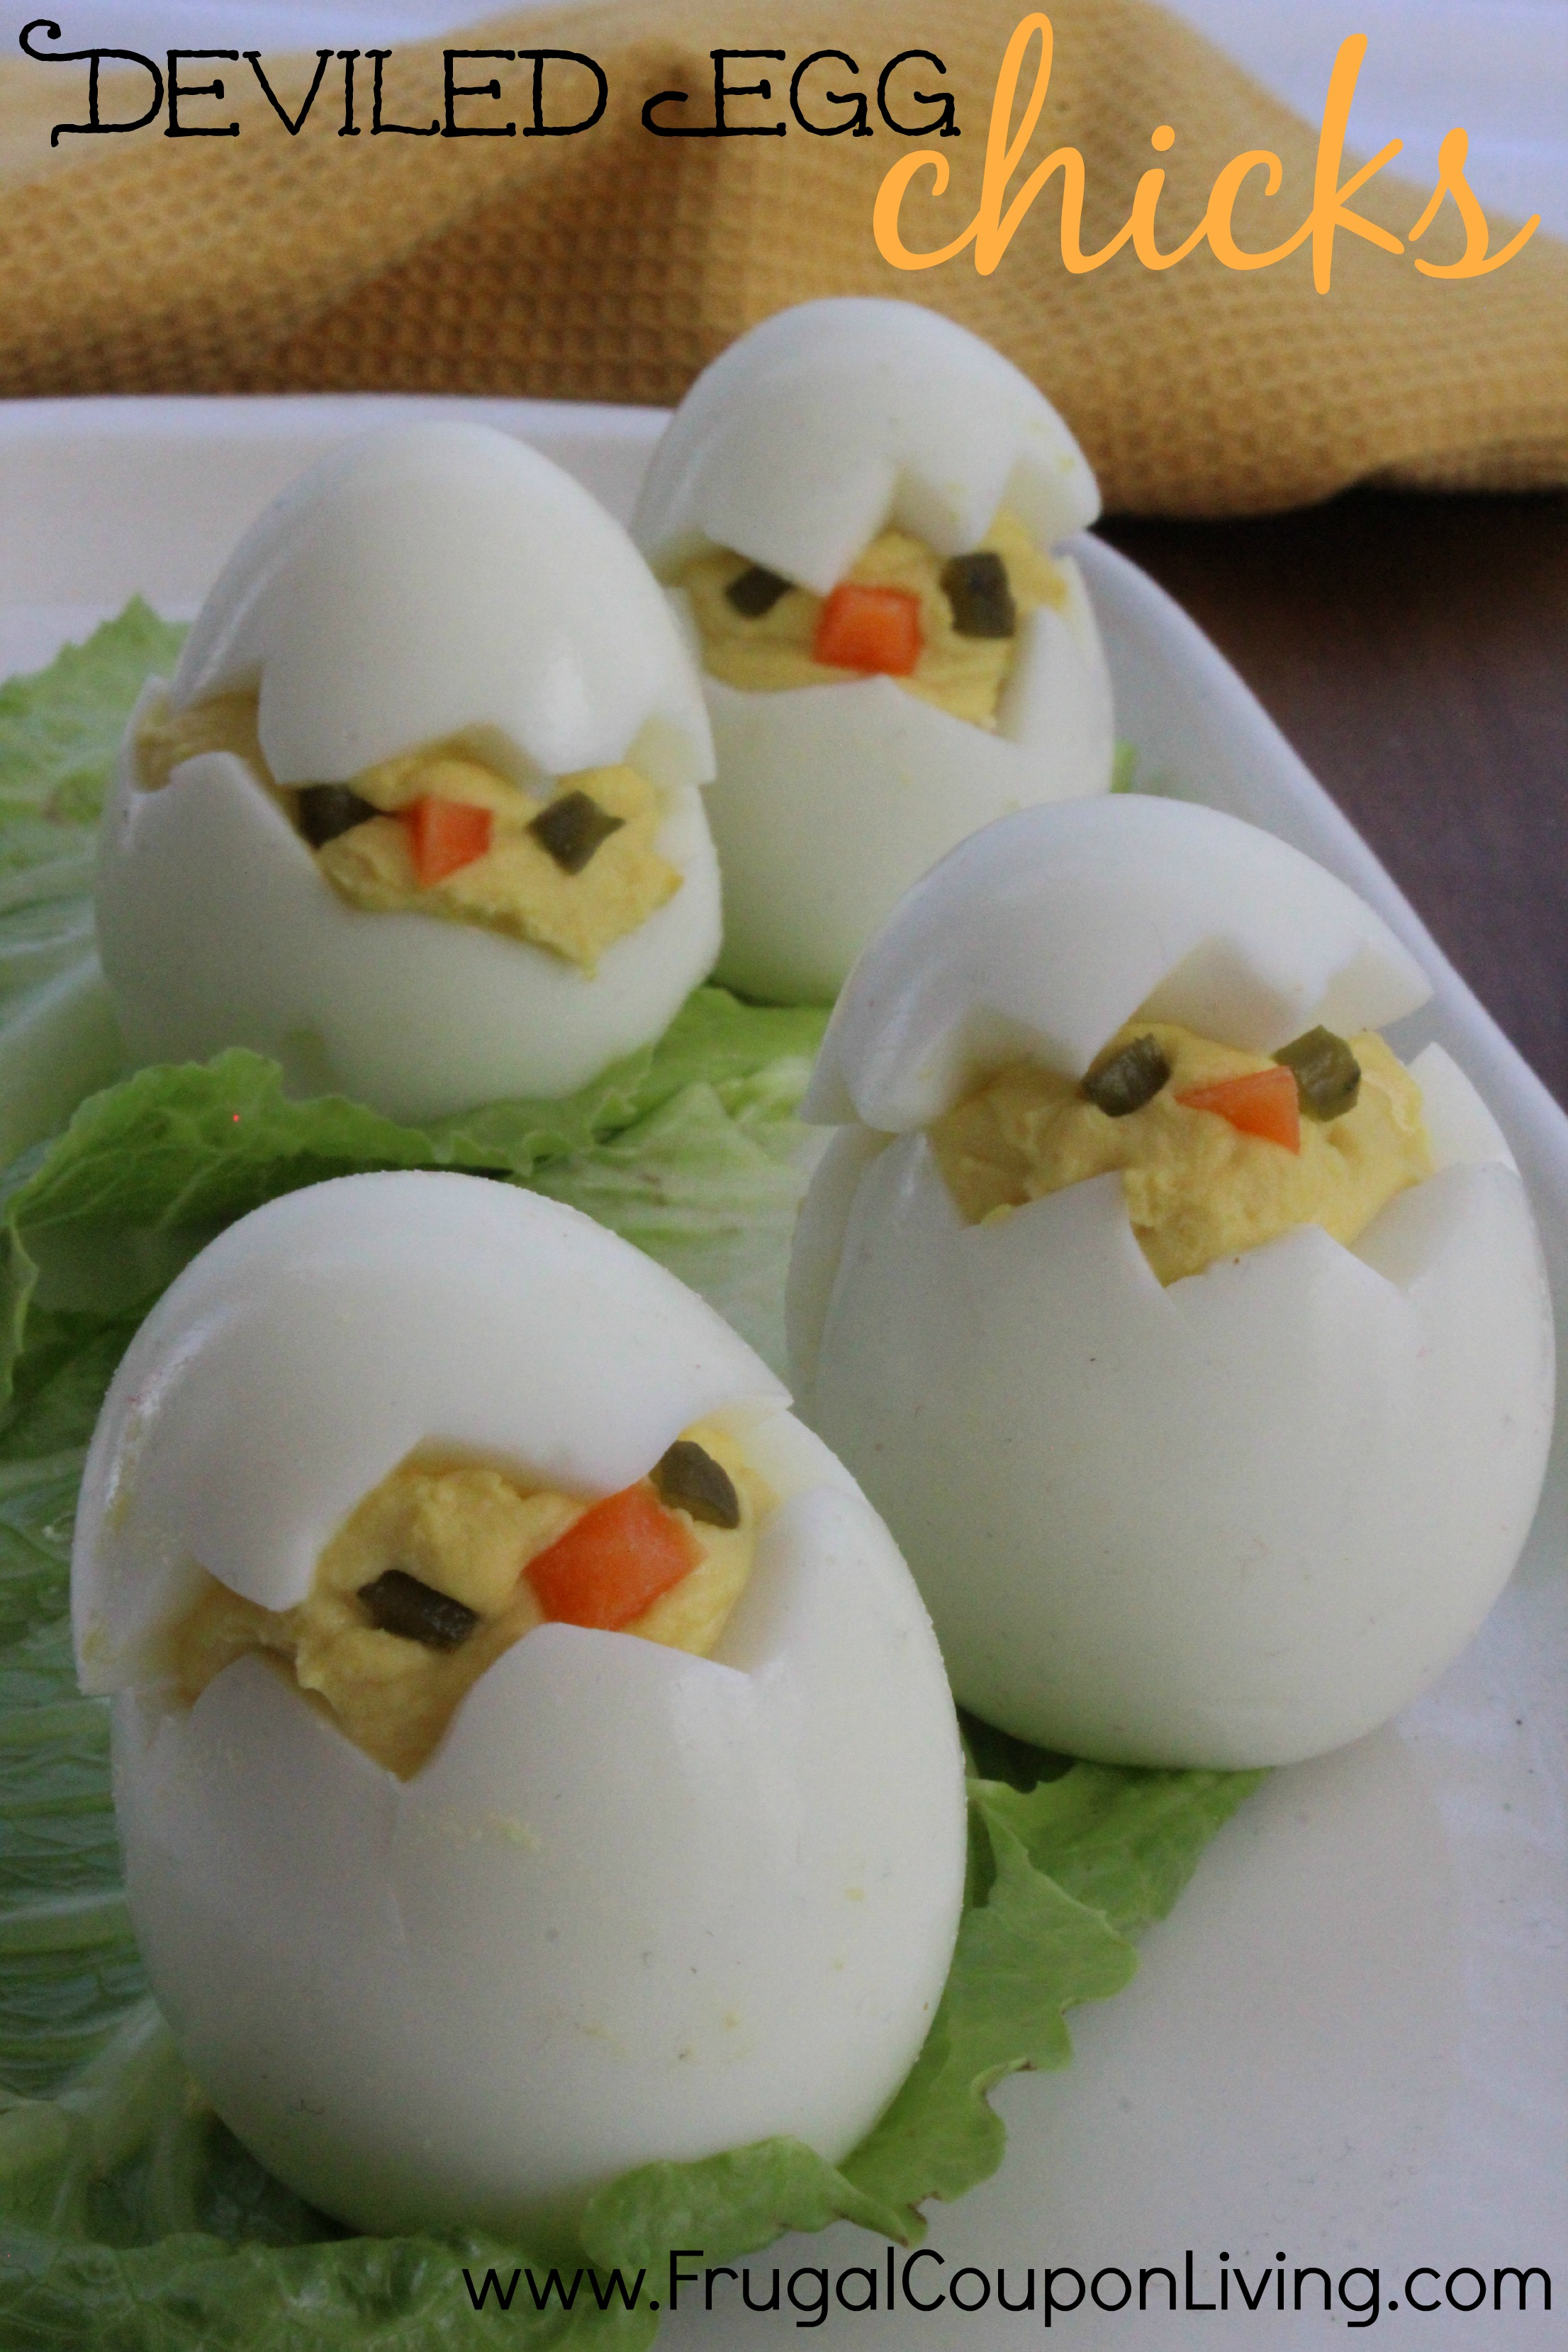 delived-egg-chicks-frugal-coupon-living